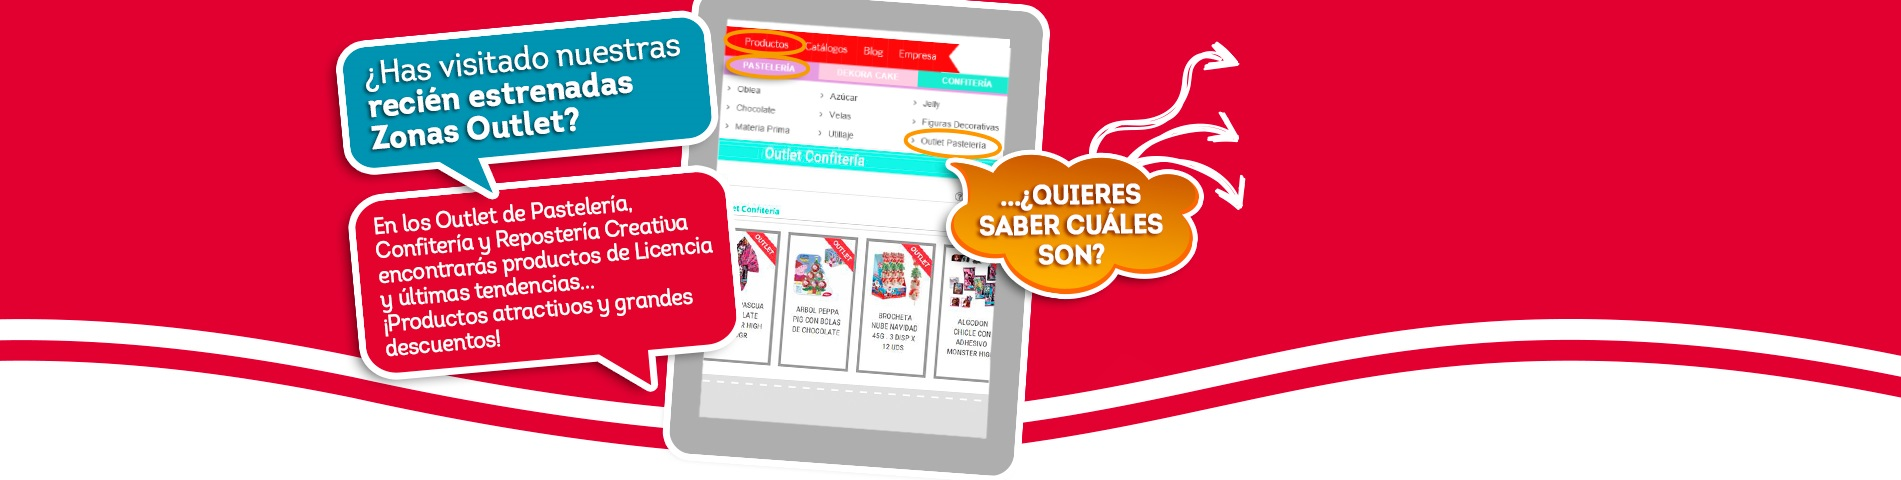 slider-COMUNICADO_OUTLET1